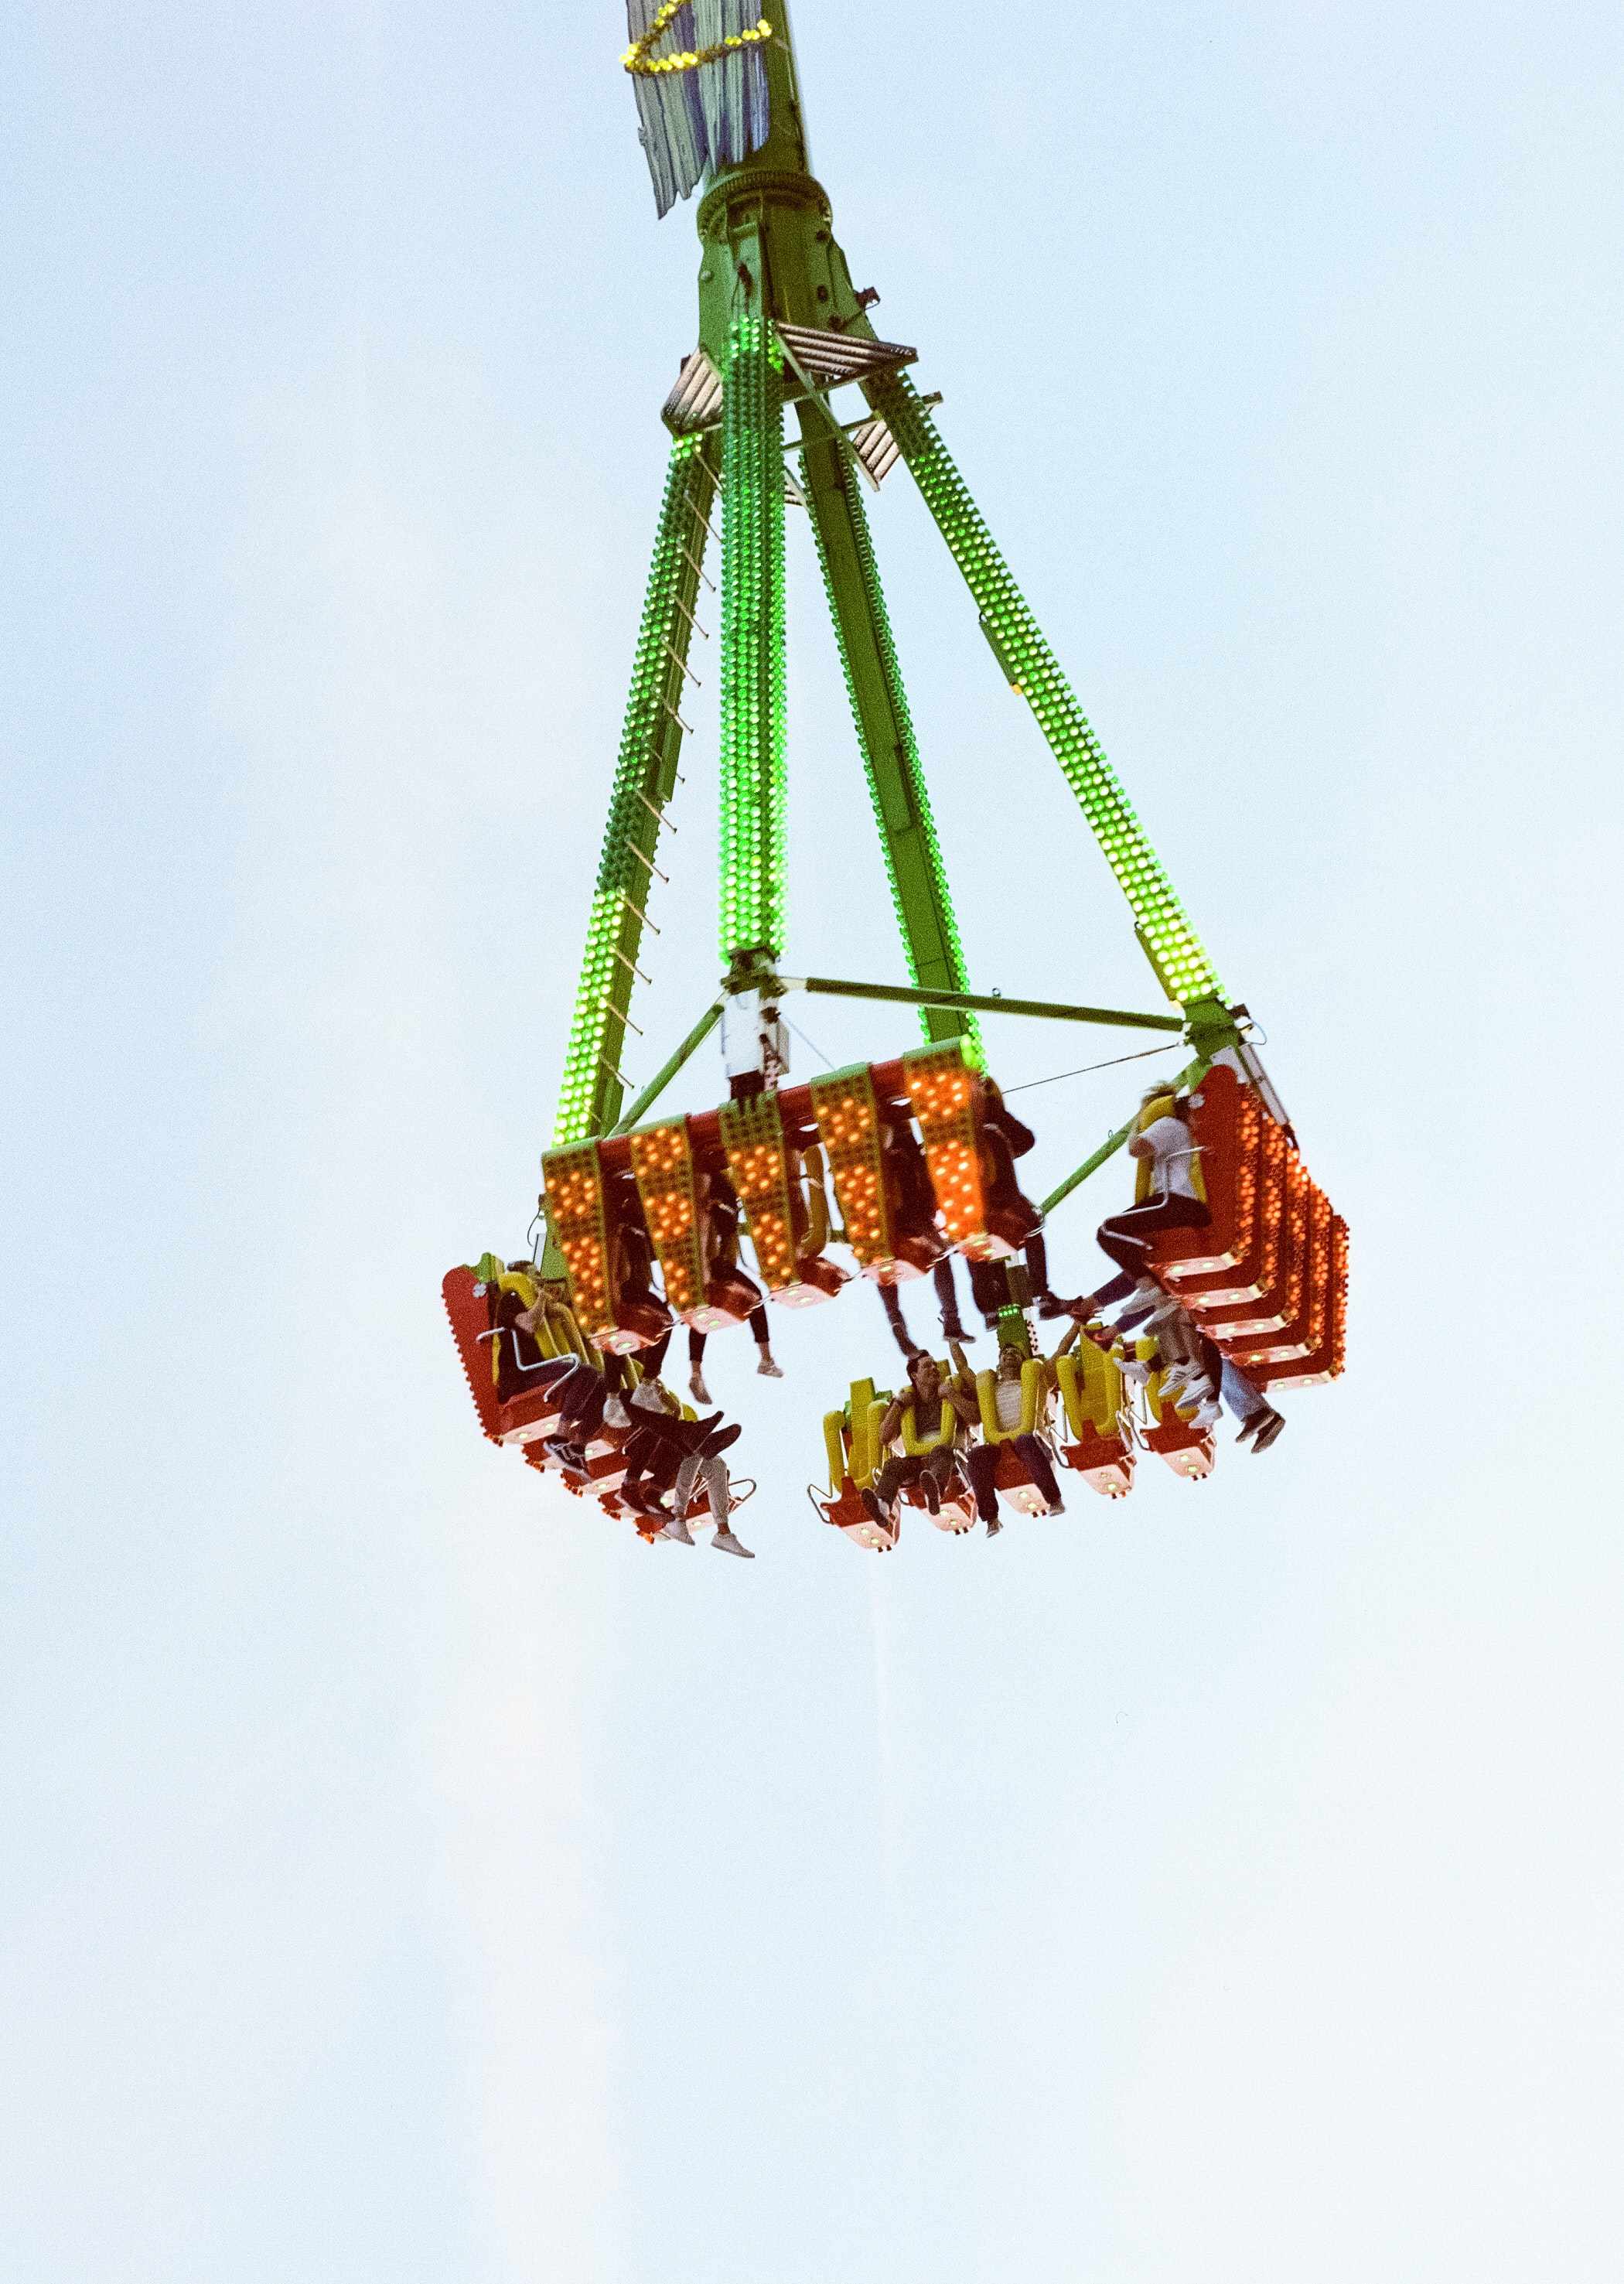 green and orange carnival ride with people